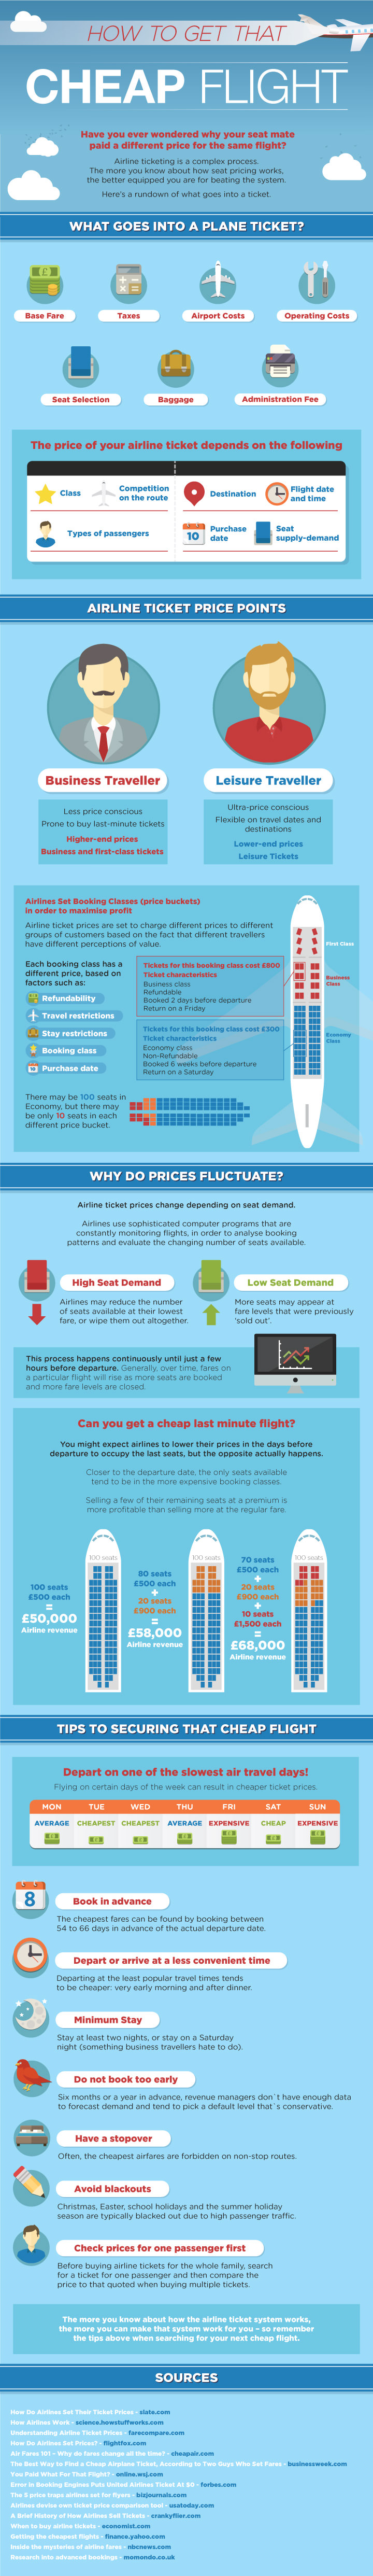 infographic airline ticket prices